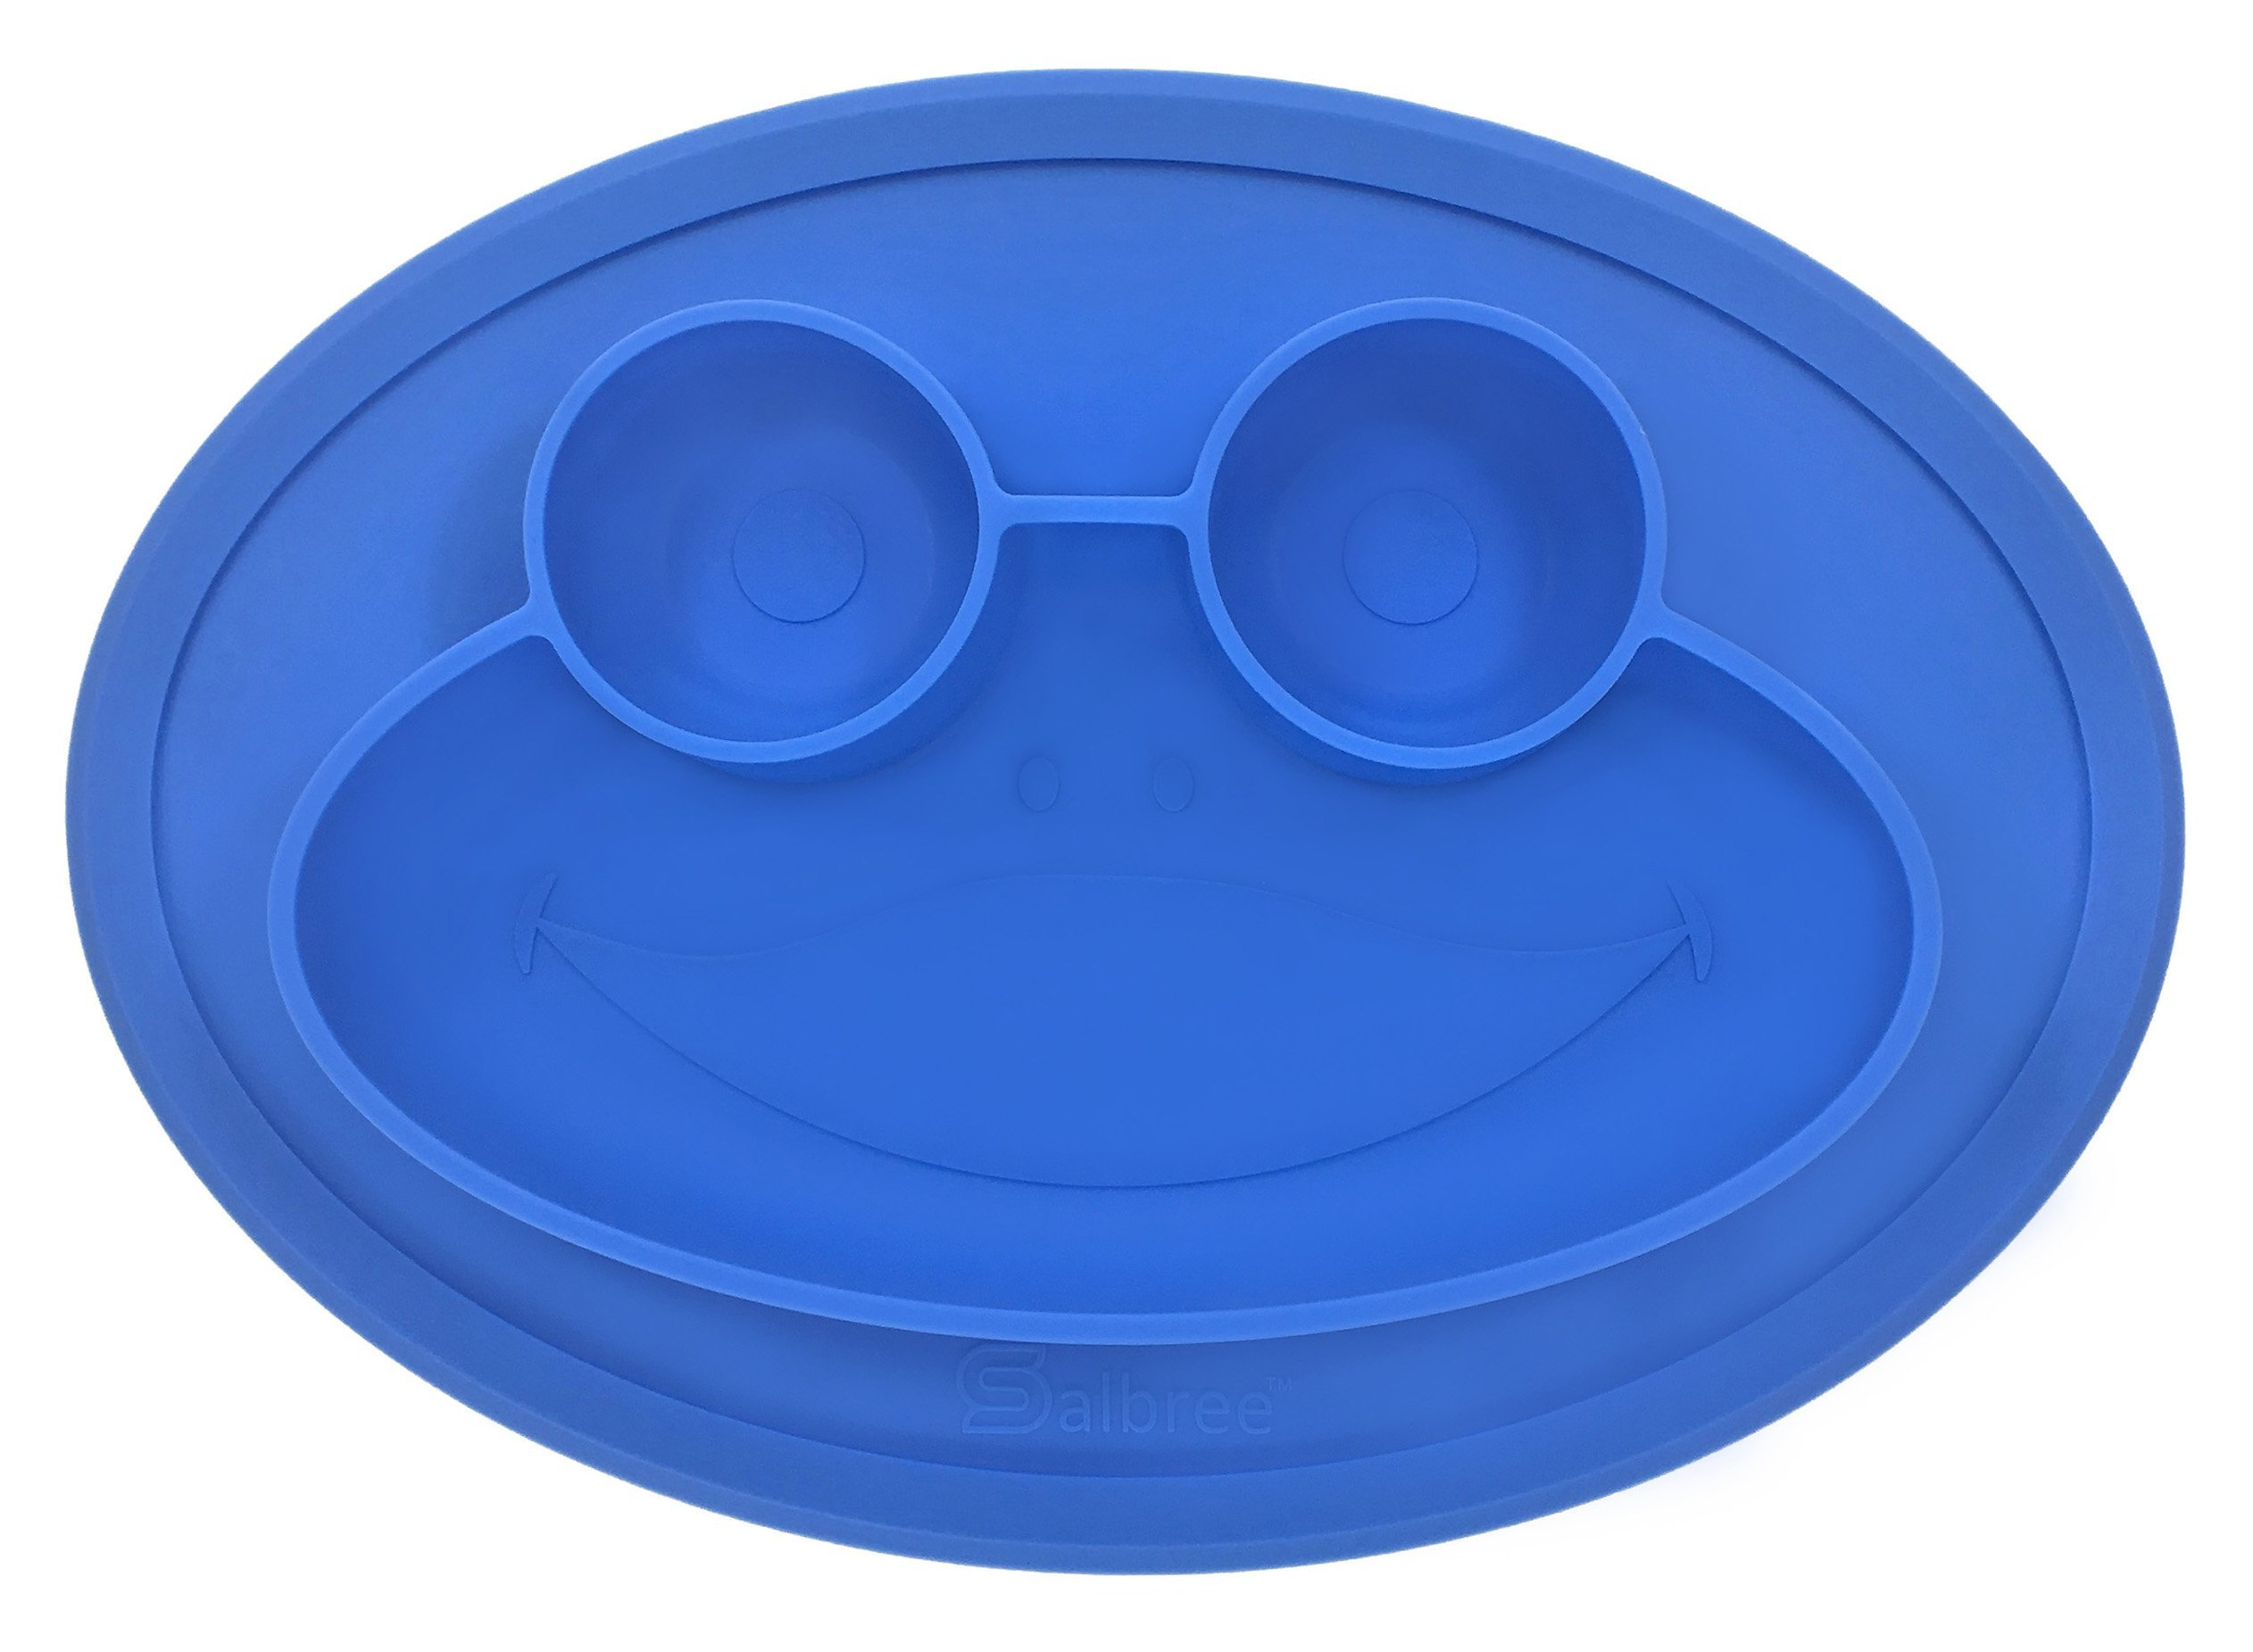 Amazon.com : Round Silicone Frog Suction Placemat for Children, Kids ...